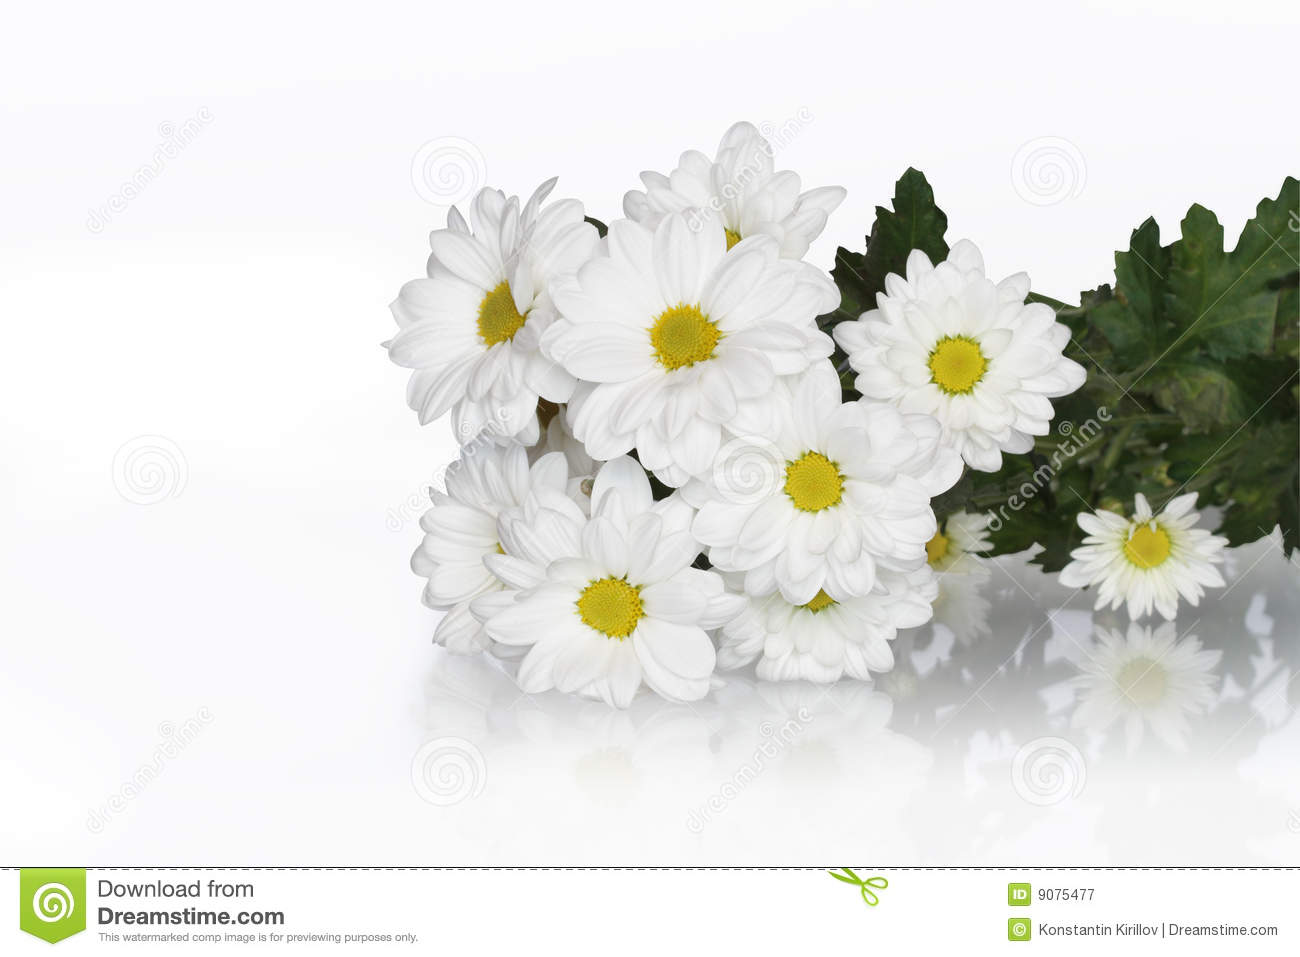 Bunch of ox eye daisy isolated on white background with clipping path